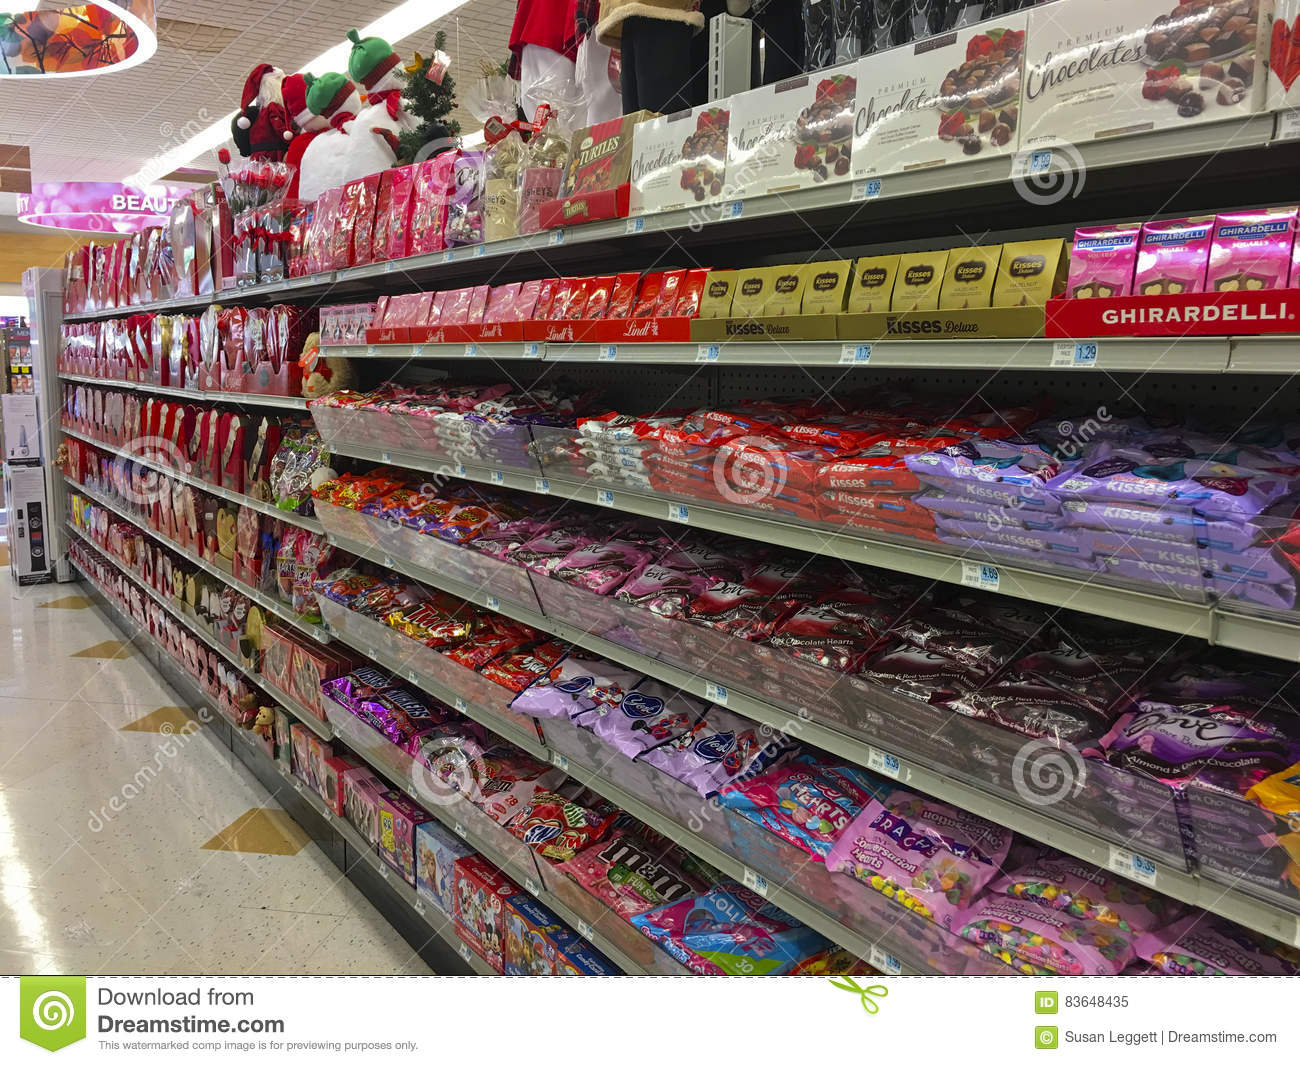 a valentines display on the store shelves in a rite aid drug store set up 5 days ofter christmas